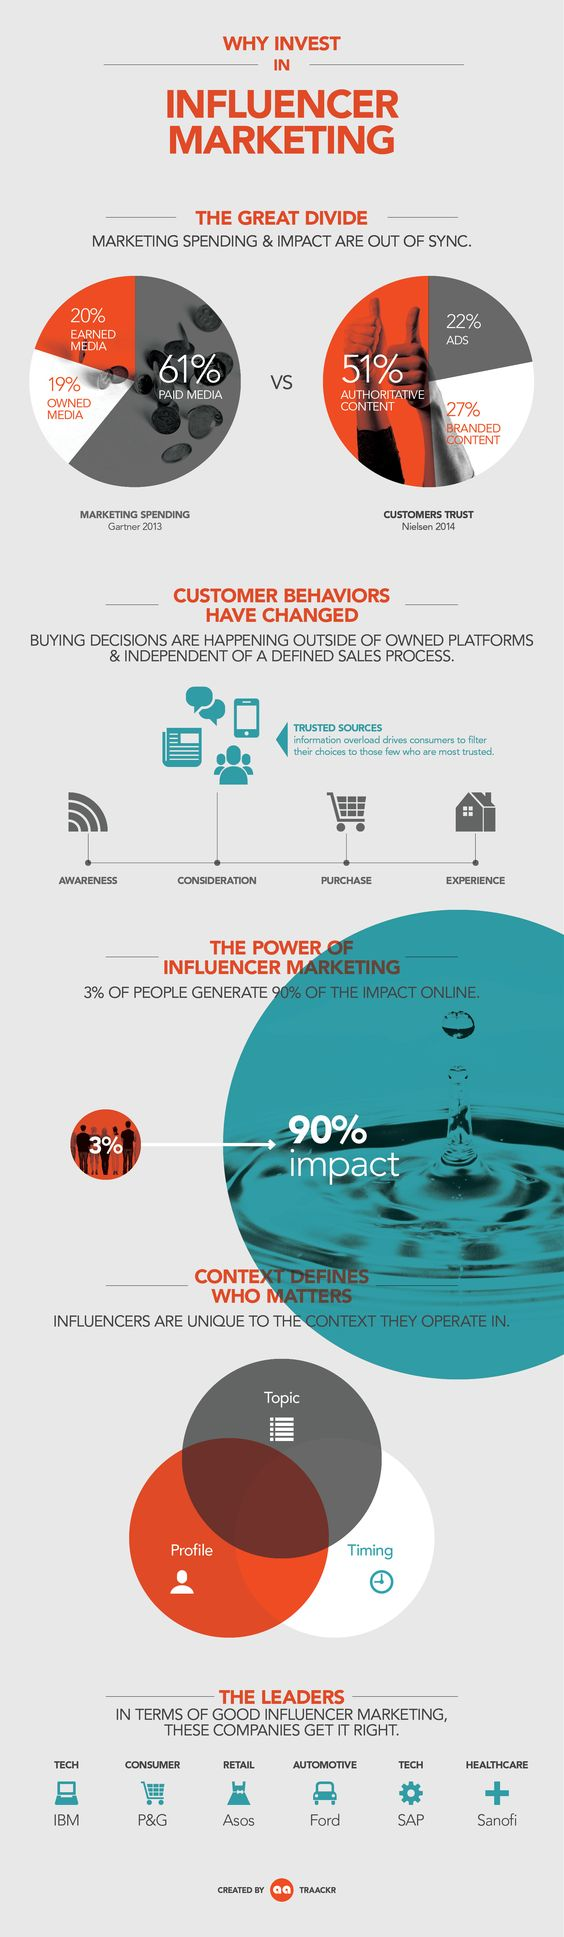 Infographic: Why Invest in Influence Marketing #infographic